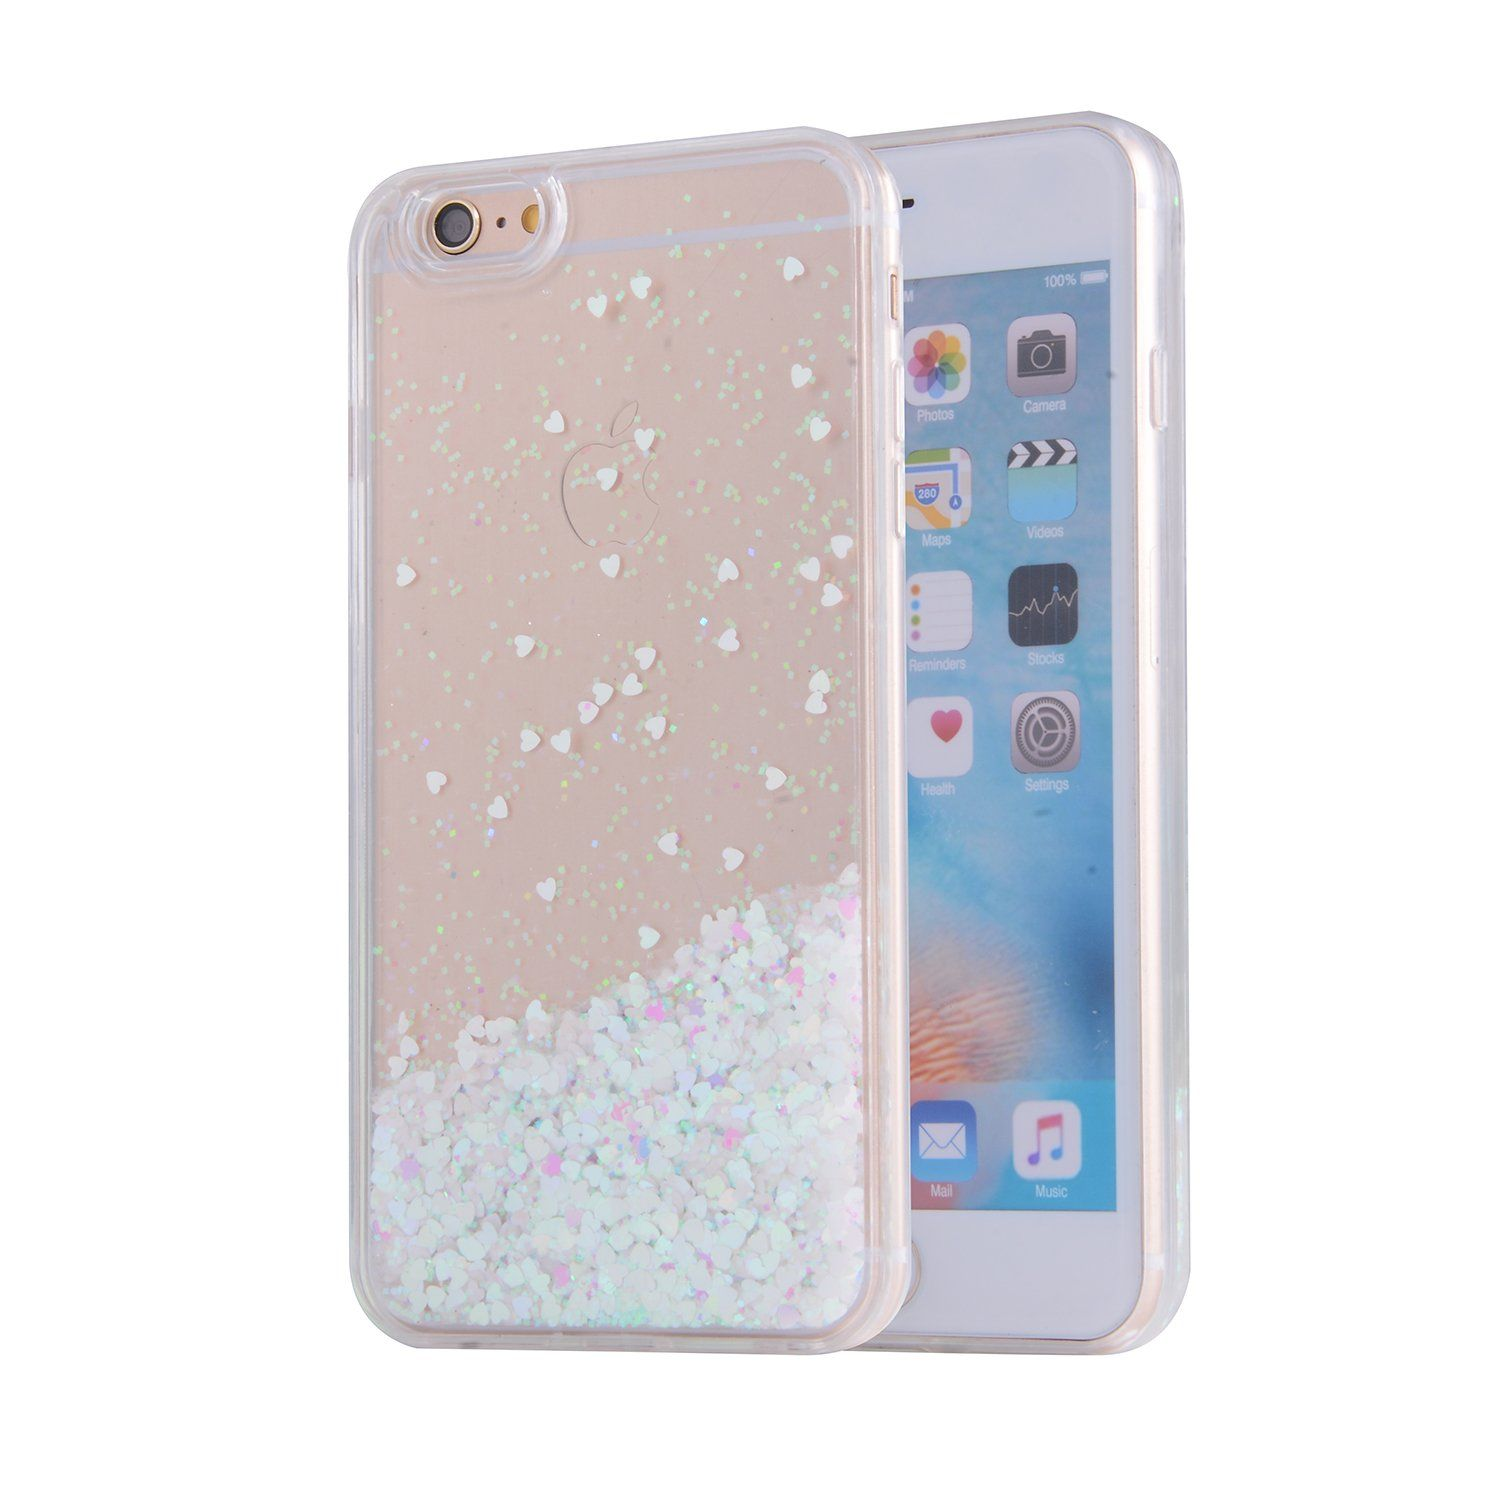 iPhone 6s case 3168494bf7